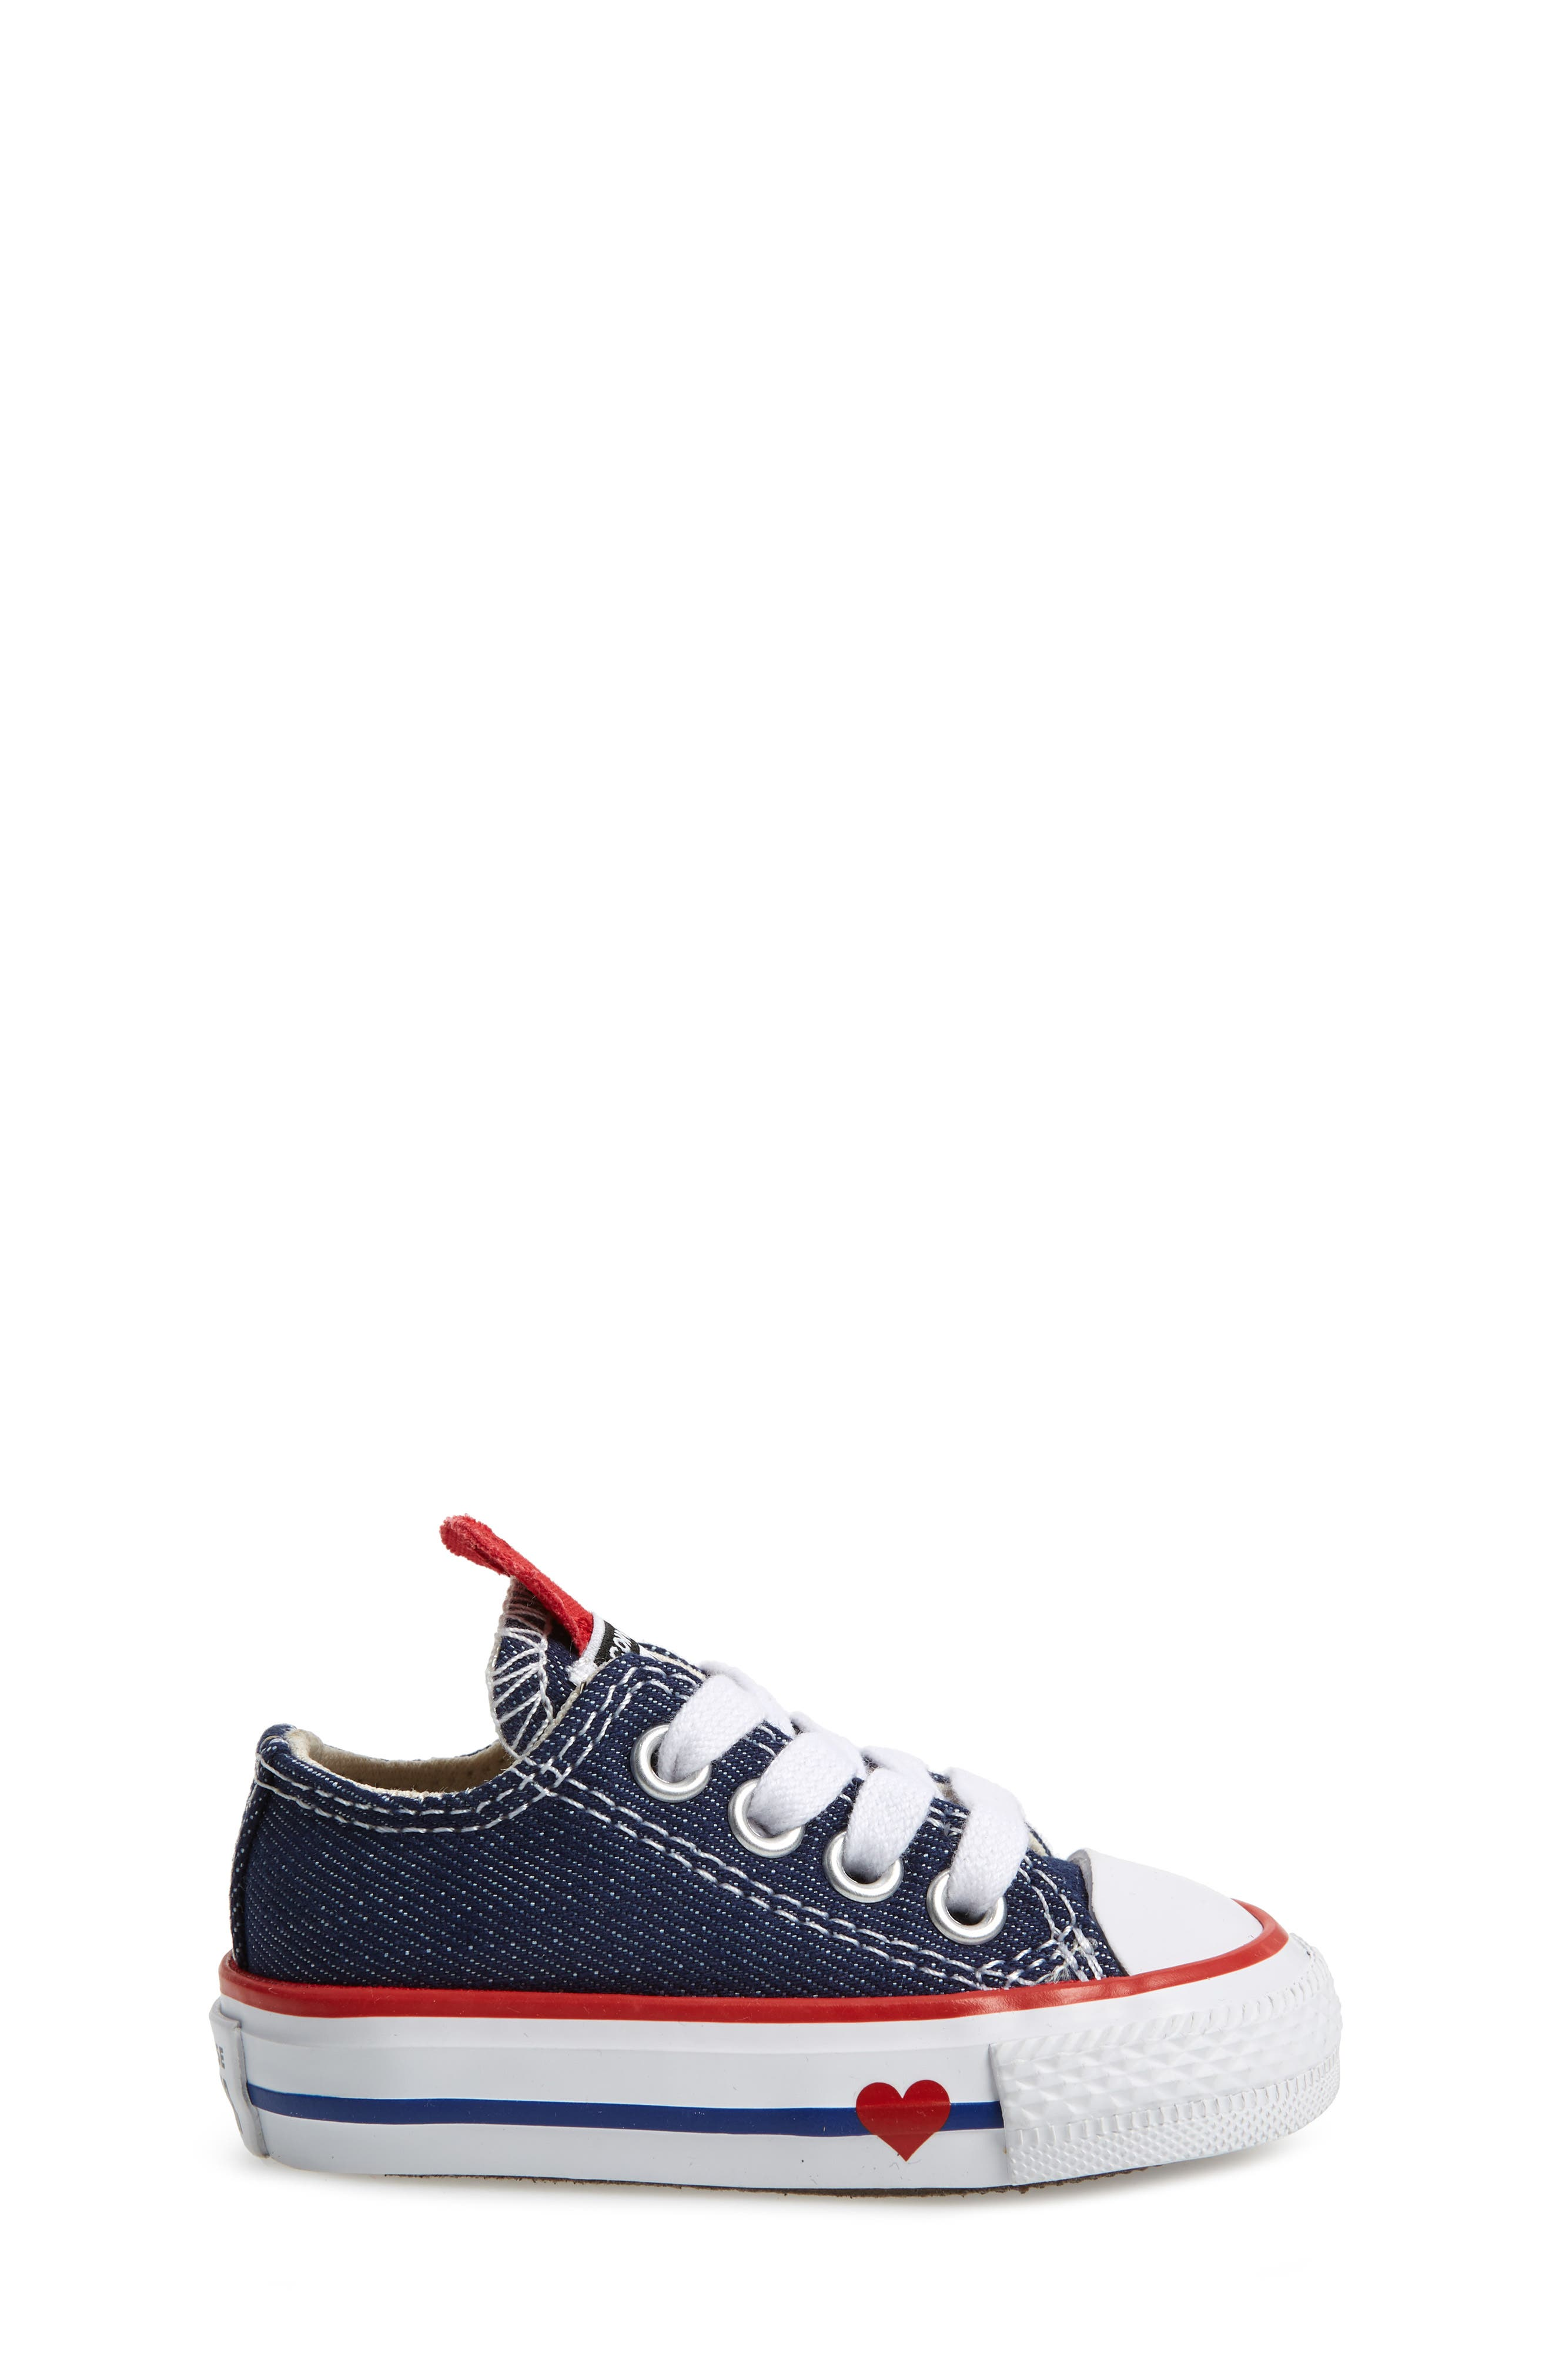 CONVERSE, Chuck Taylor<sup>®</sup> All Star<sup>®</sup> Ox Low Top Sneaker, Alternate thumbnail 3, color, 410